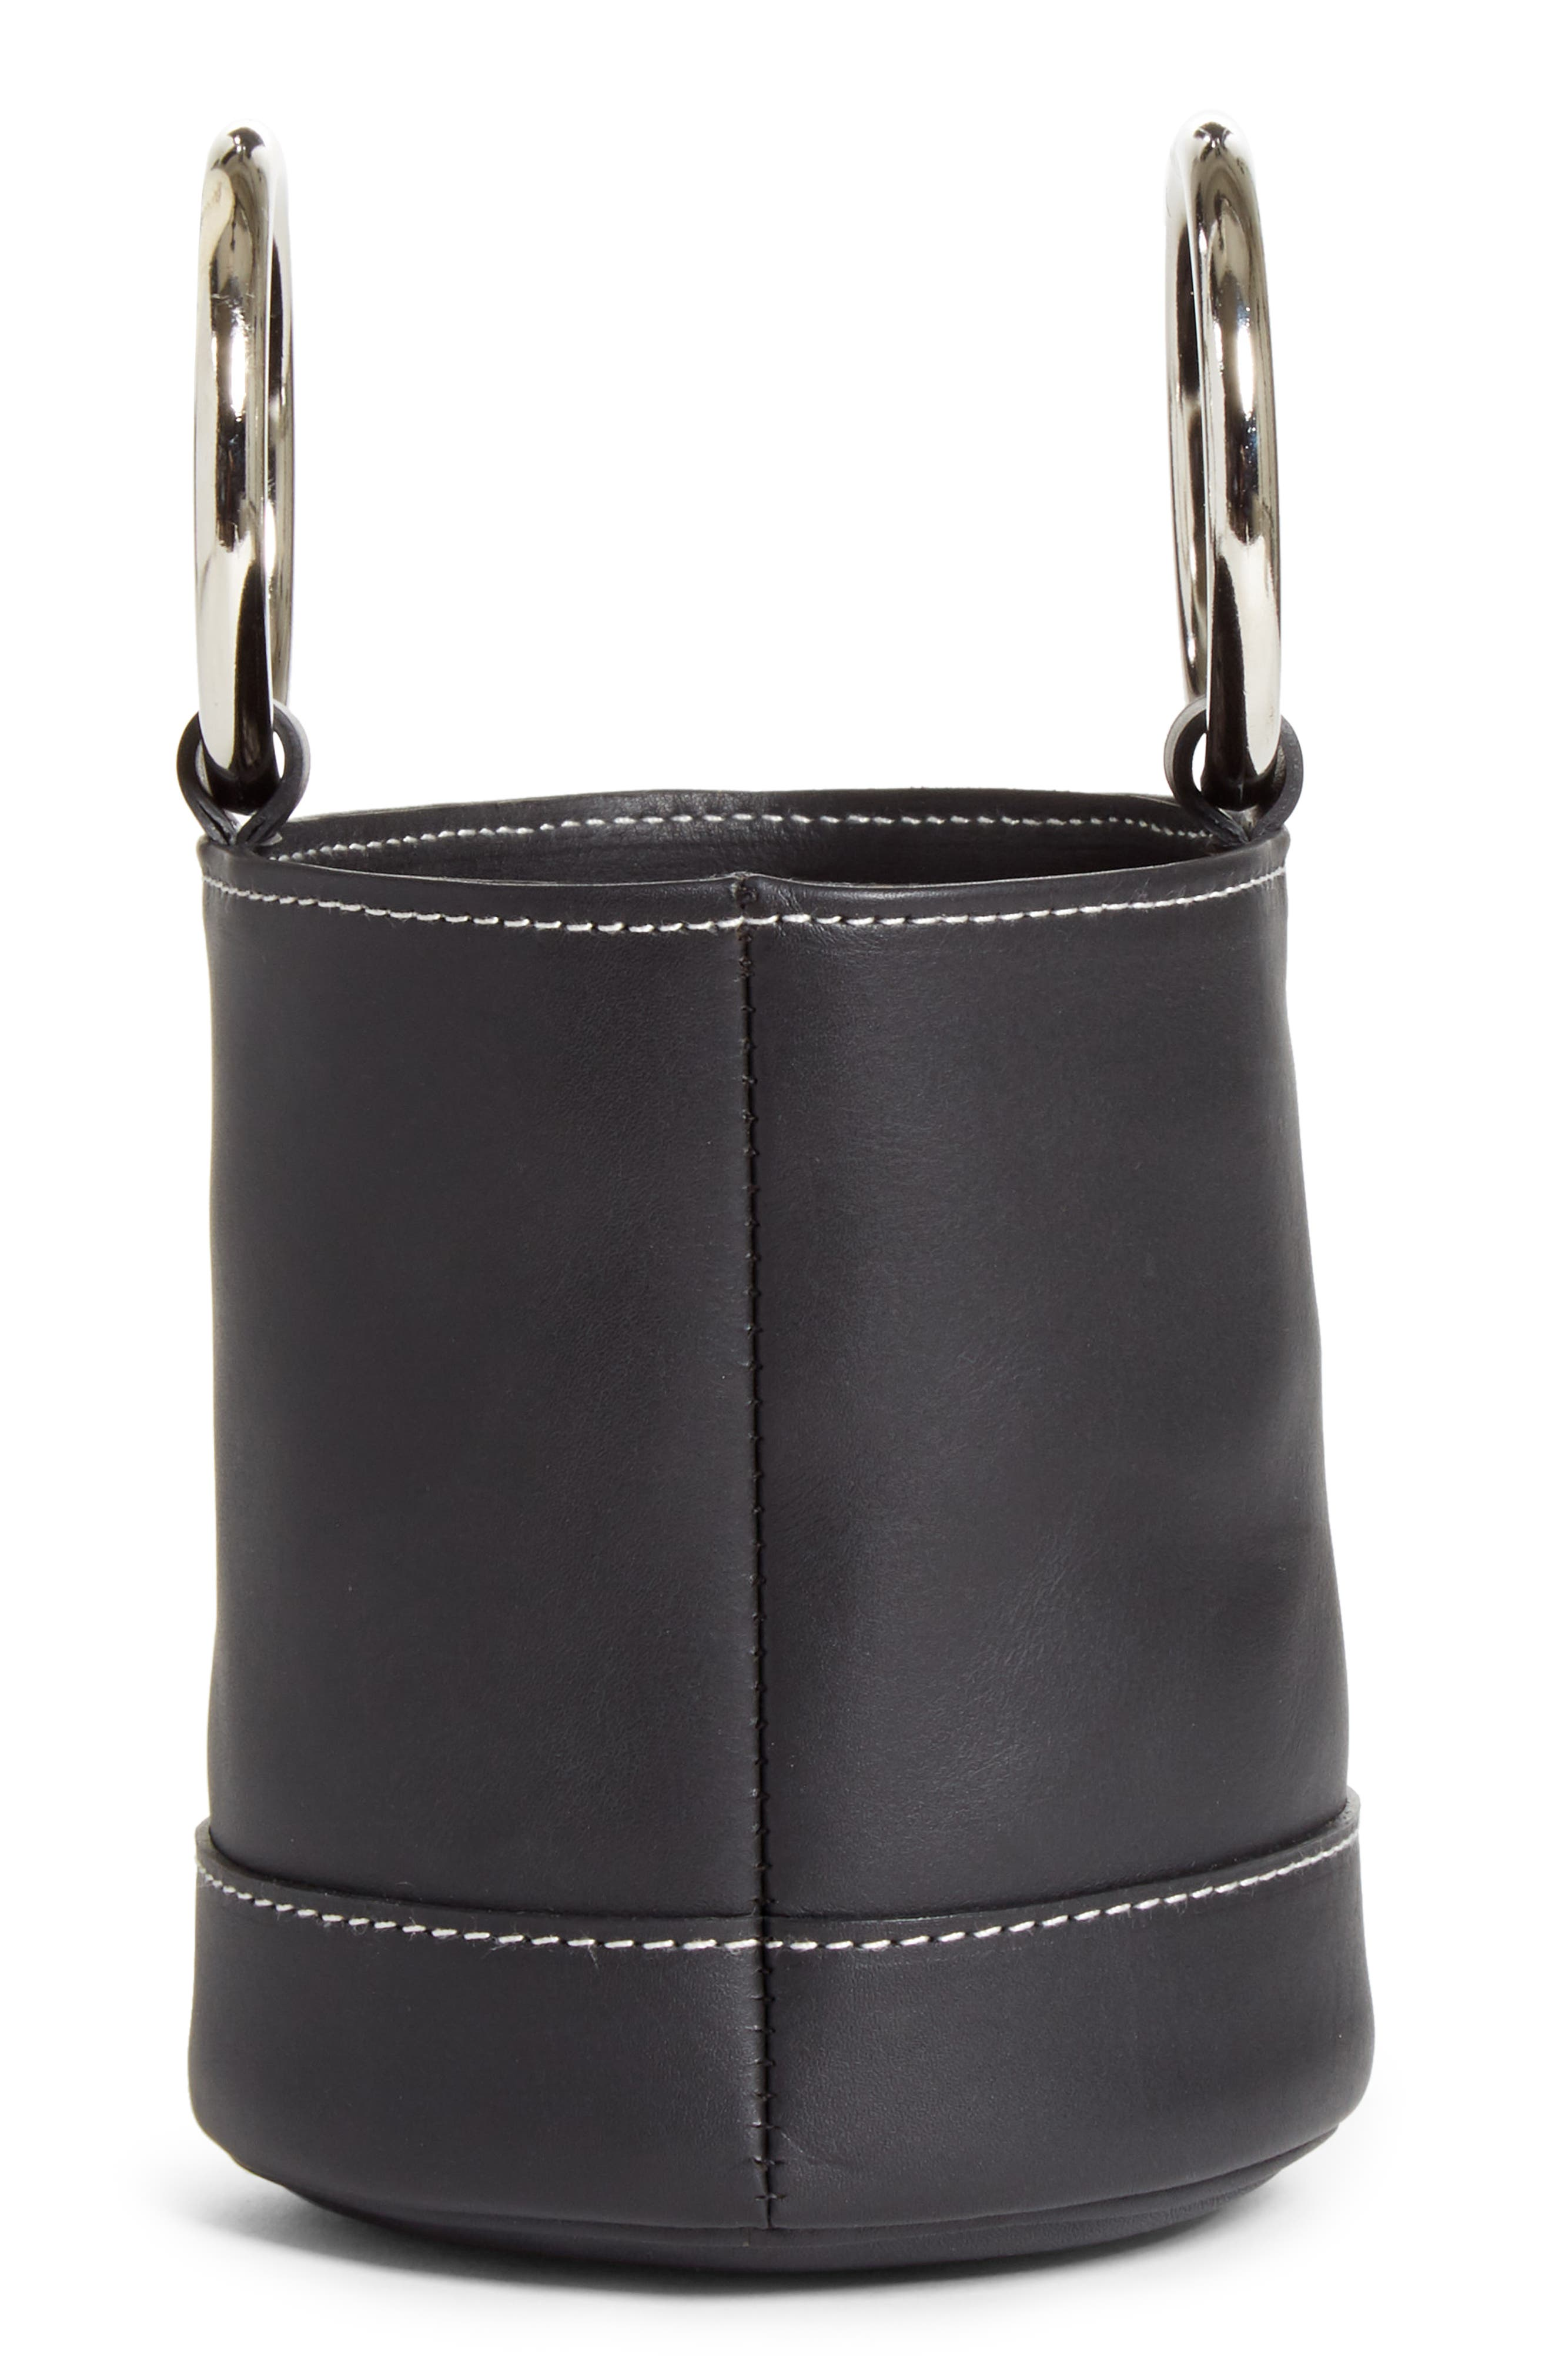 Bonsai 15 Calfskin Leather Bucket Bag,                             Alternate thumbnail 5, color,                             BLACK WITH WHITE STITCHING